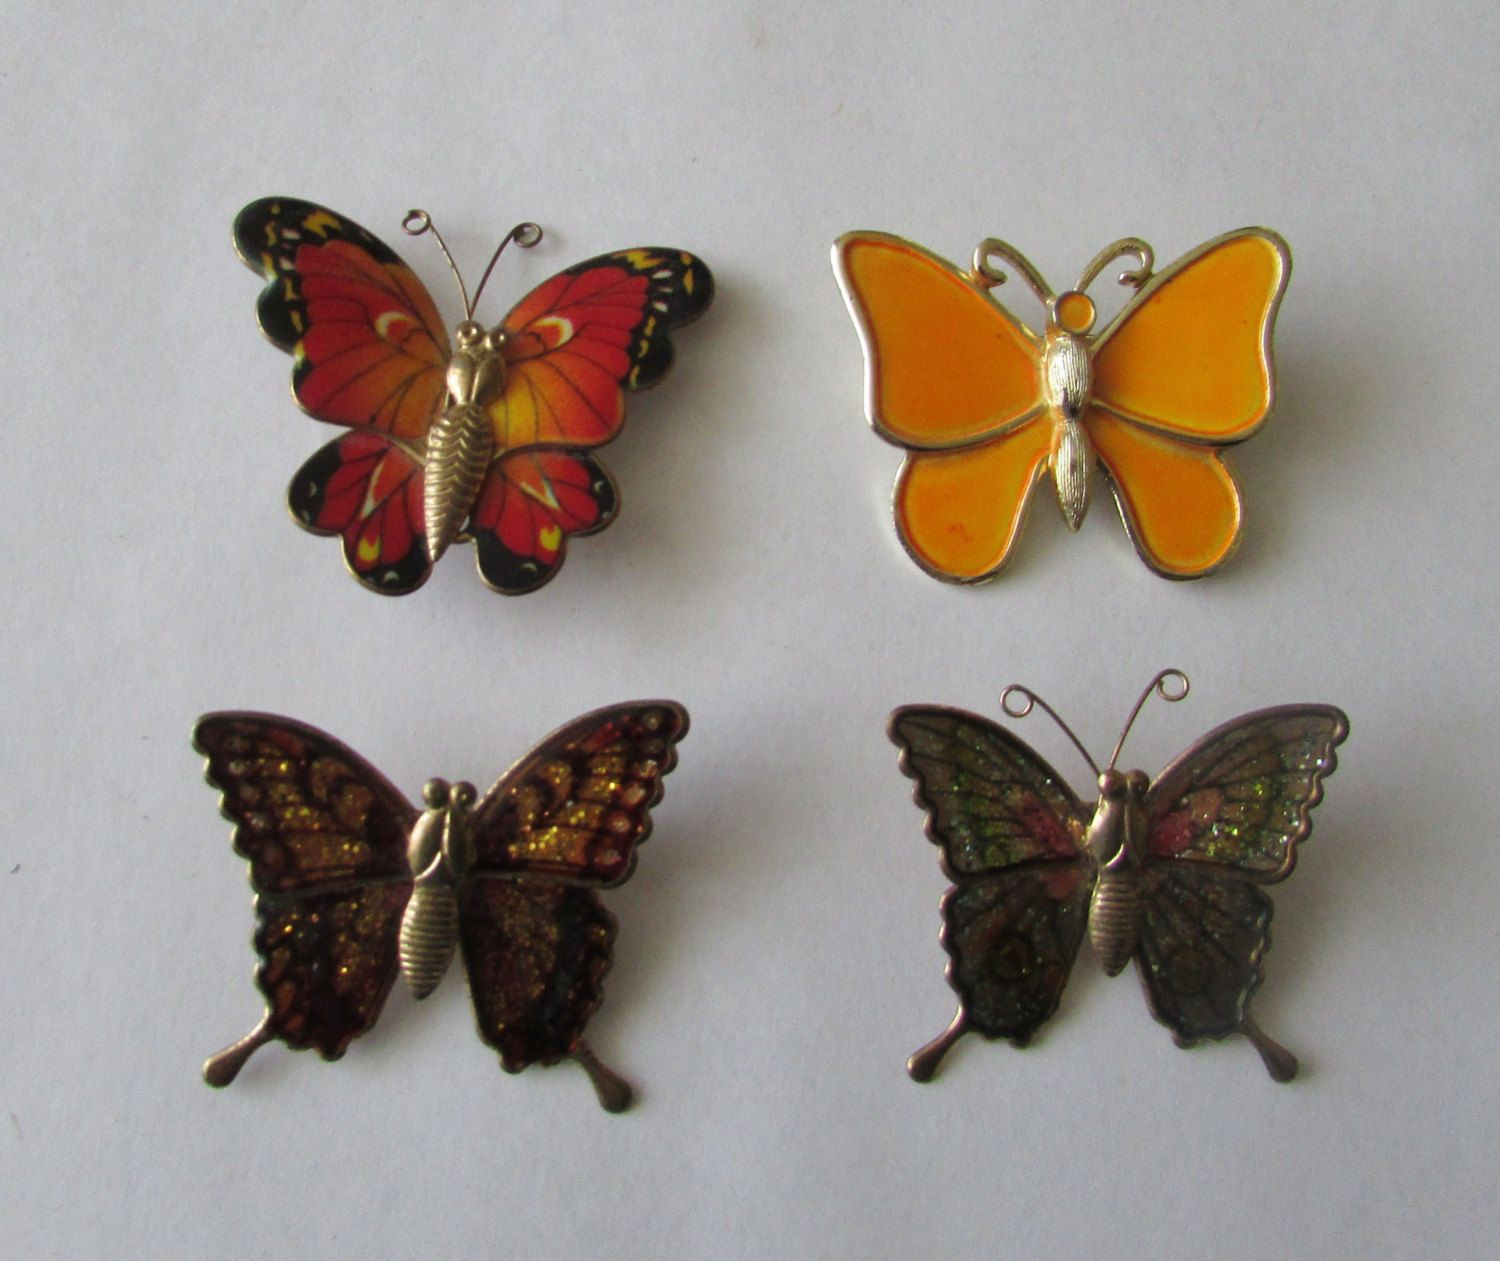 4 Vintage Butterfly Pins Brooches by MyriadOfVintage on Etsy https://www.etsy.com/listing/275355204/4-vintage-butterfly-pins-brooches